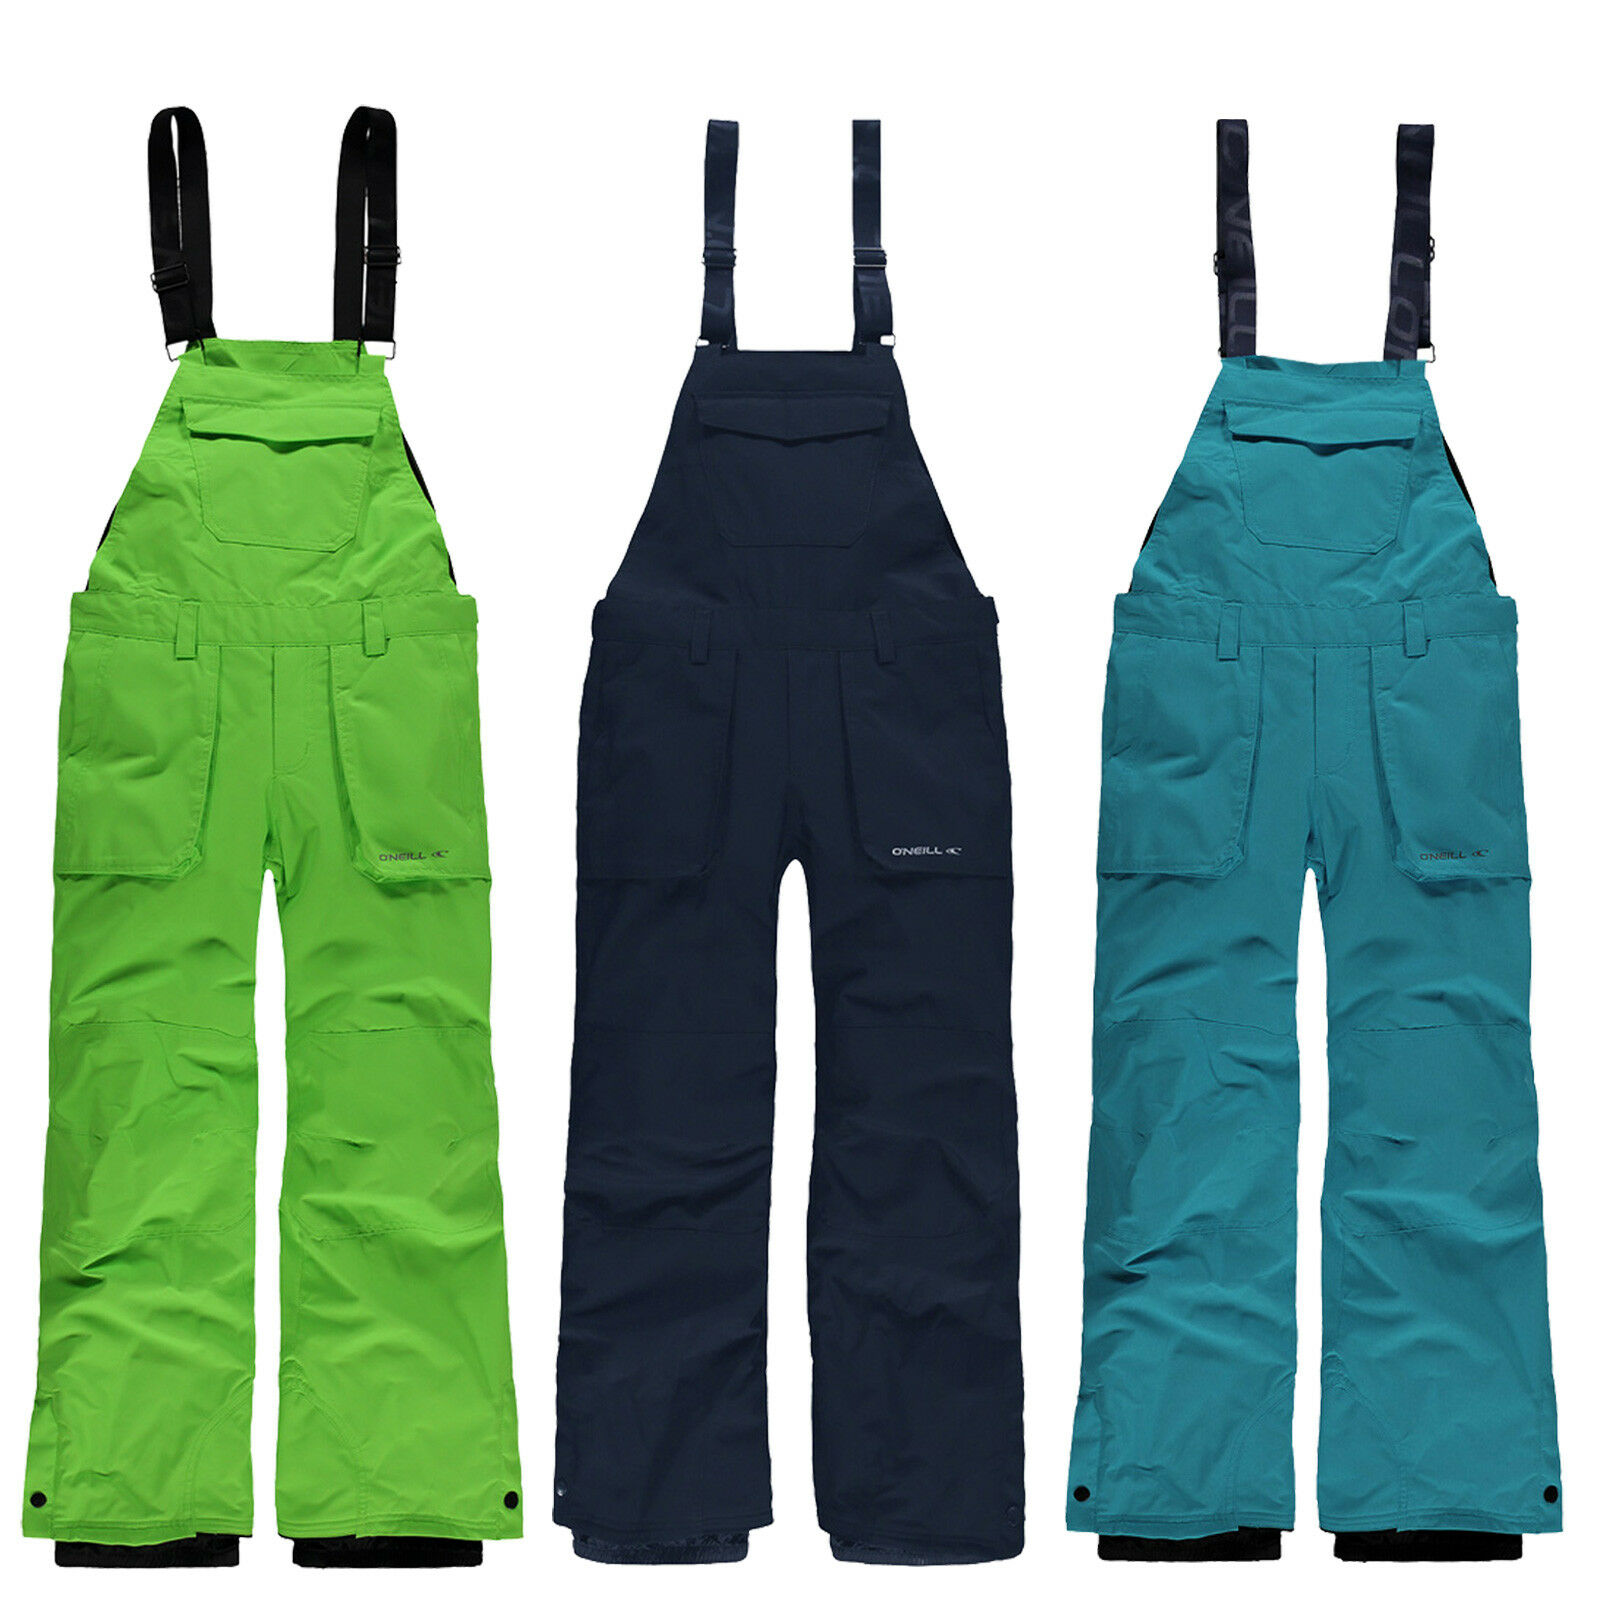 Oneill o'Neill Exile Bib Pant  Kinder-Snowpant Snow Trousers Ski Snowboard  new exclusive high-end